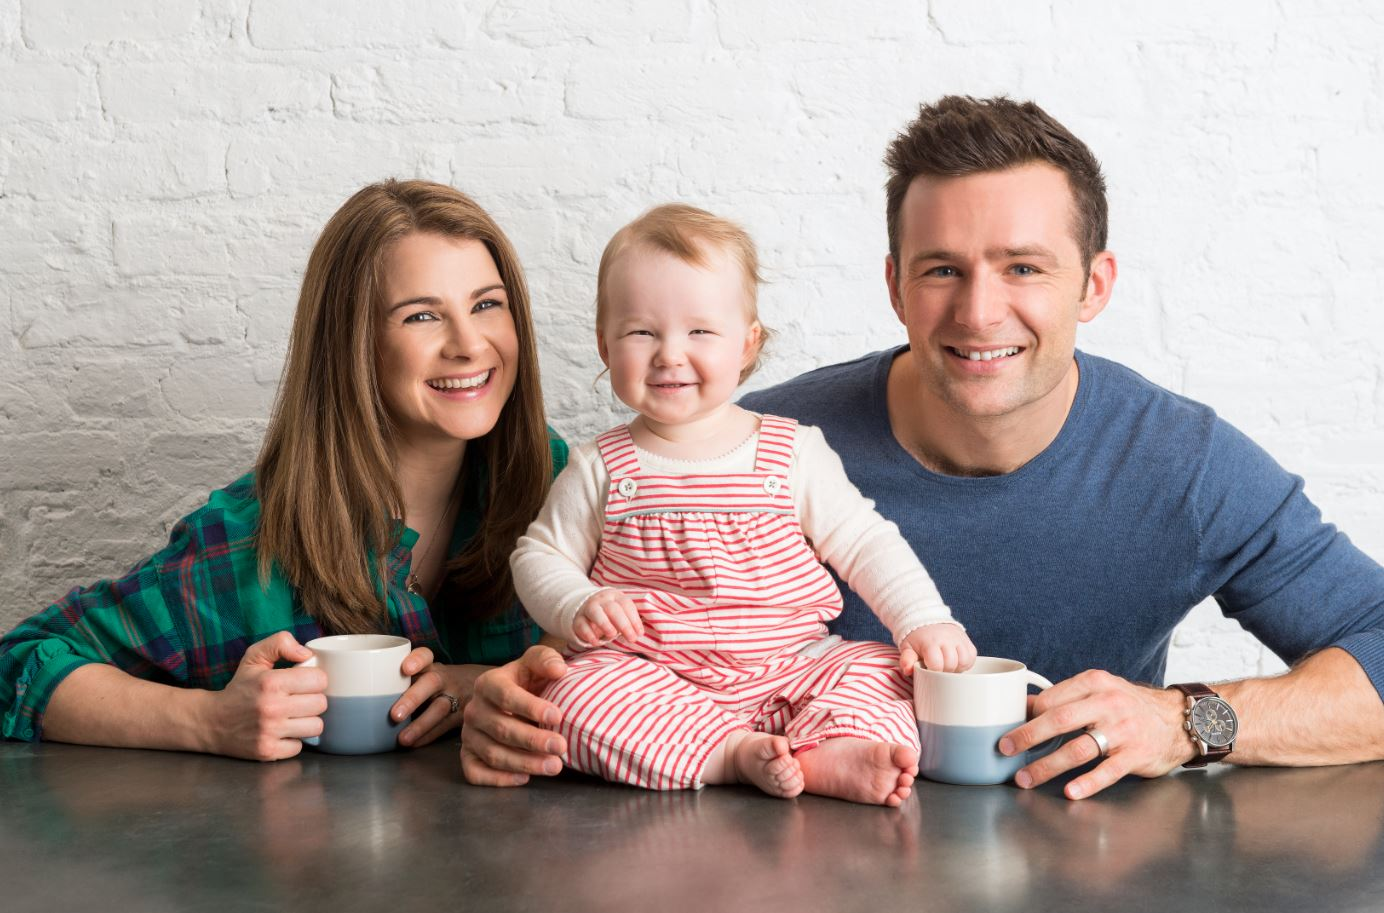 McFly's Harry Judd and wife Izzy welcome their second child into the world